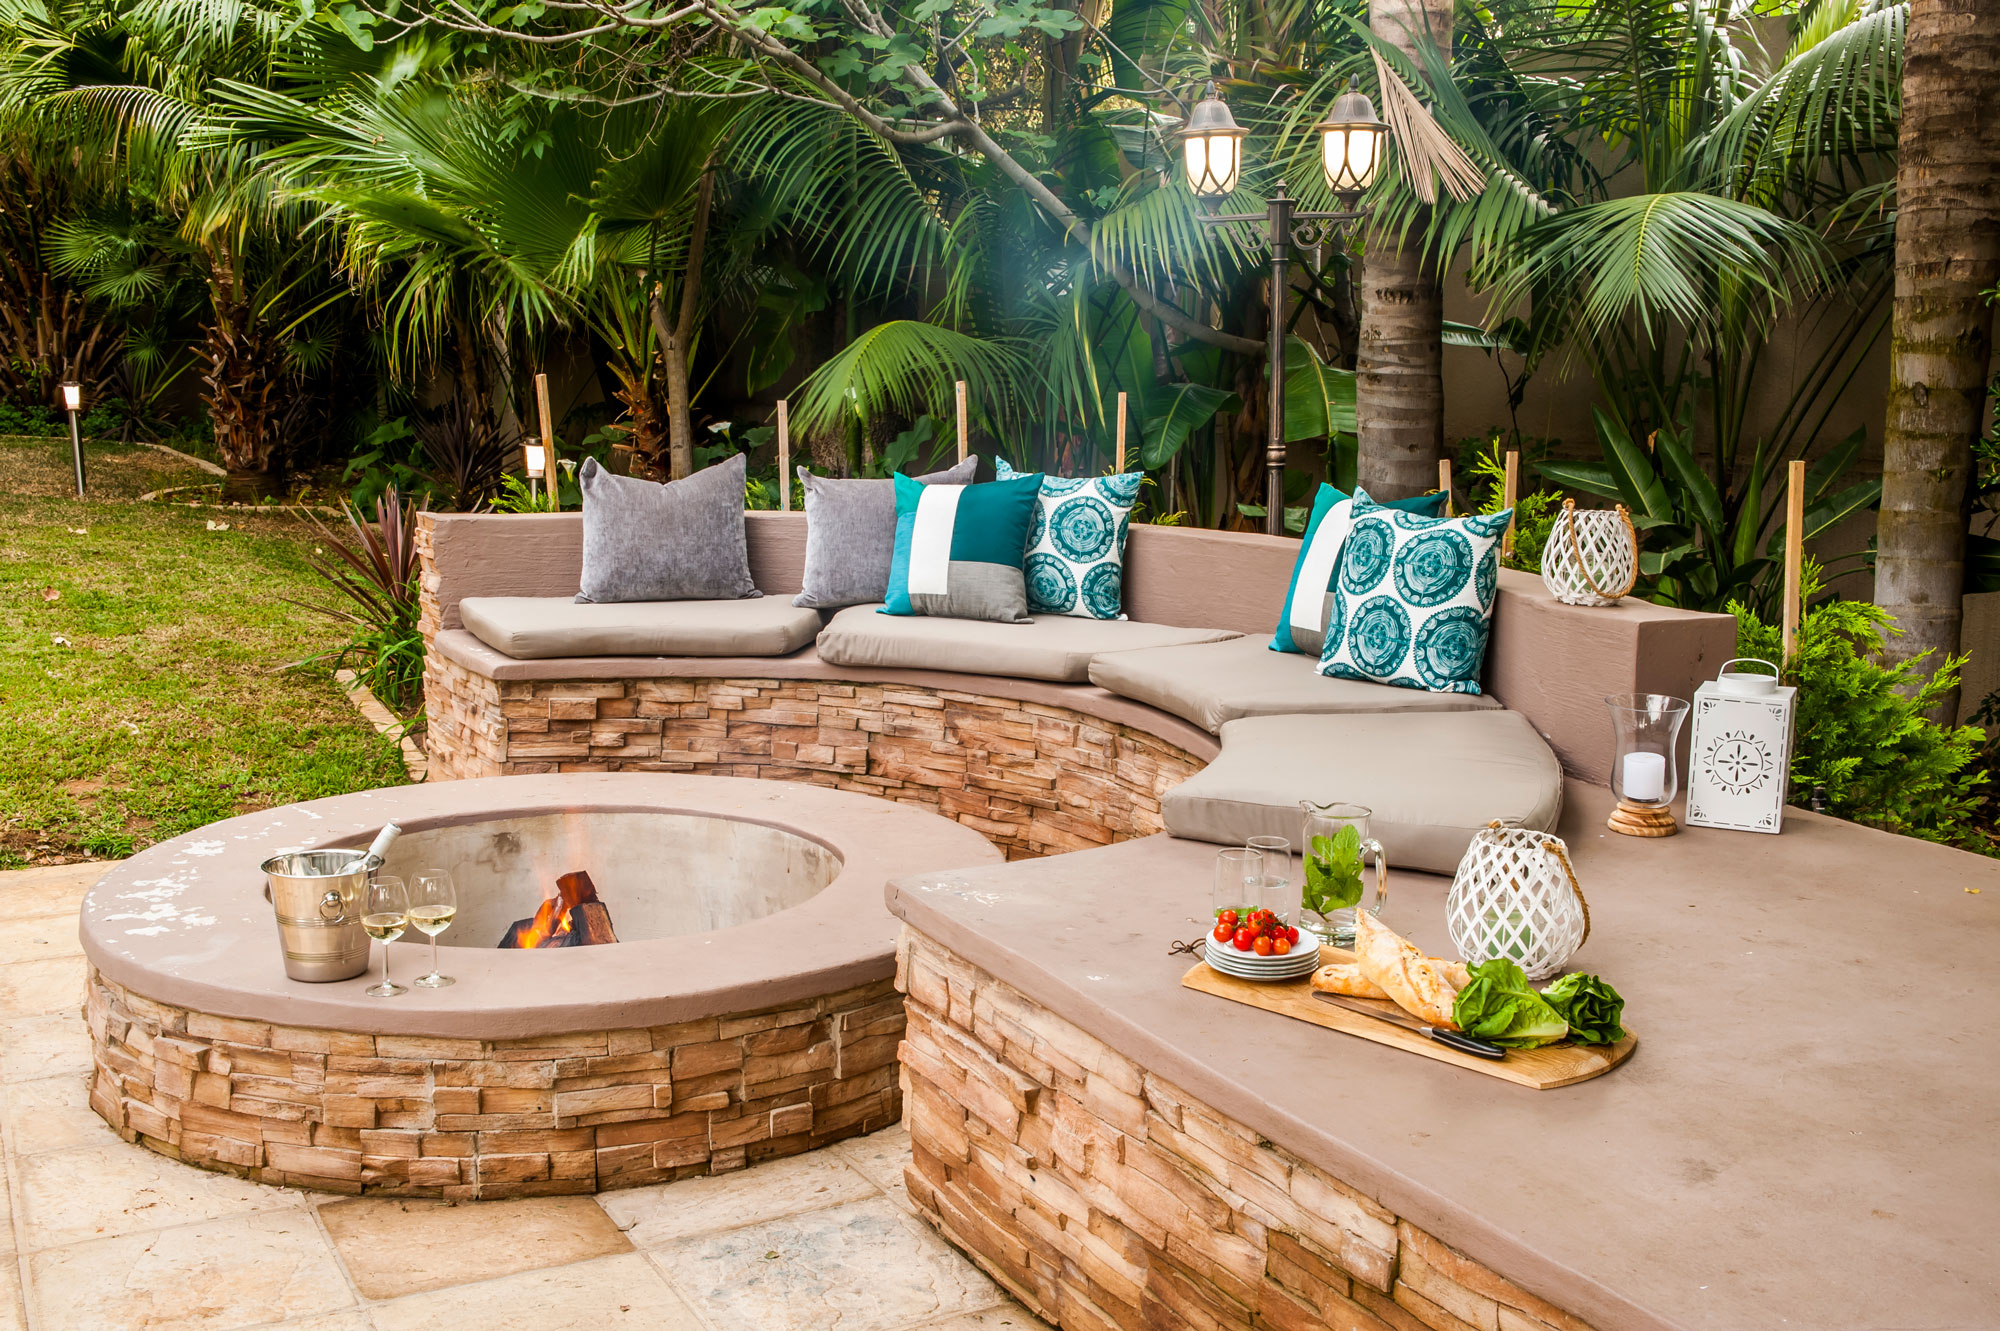 How To Build A Firepit Sa Garden And Home